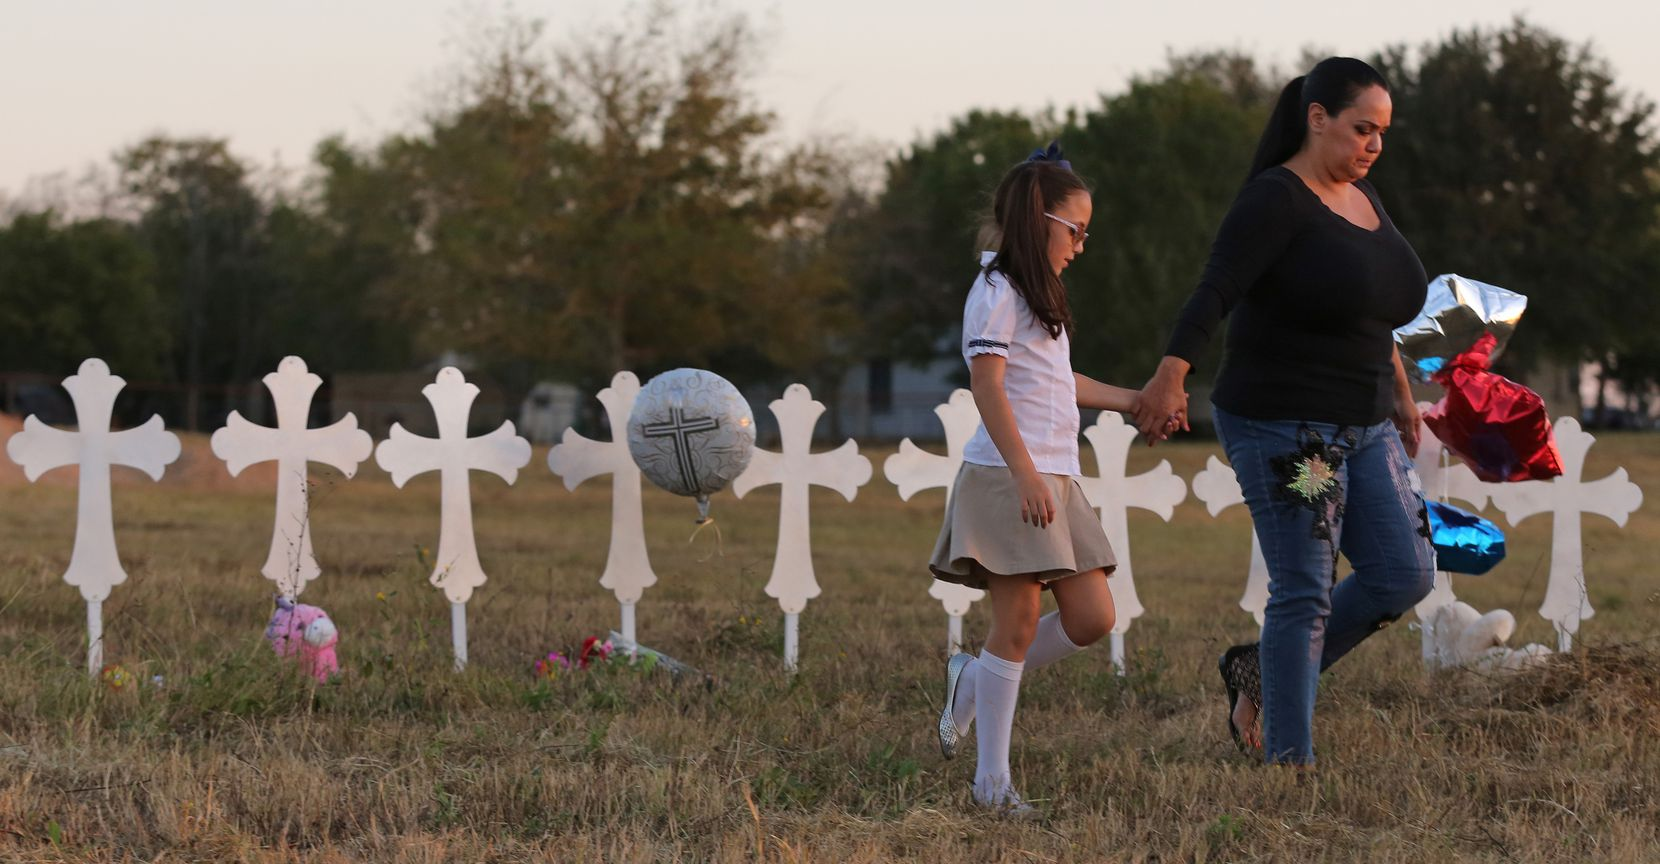 Eight-year-old Heather Cooper and her mother Meredith Cooper of San Antonio walk away after placing a remembrance at the 26 crosses placed in a field in Sutherland Springs, Texas to honor those who were killed in Sunday's mass shooting.